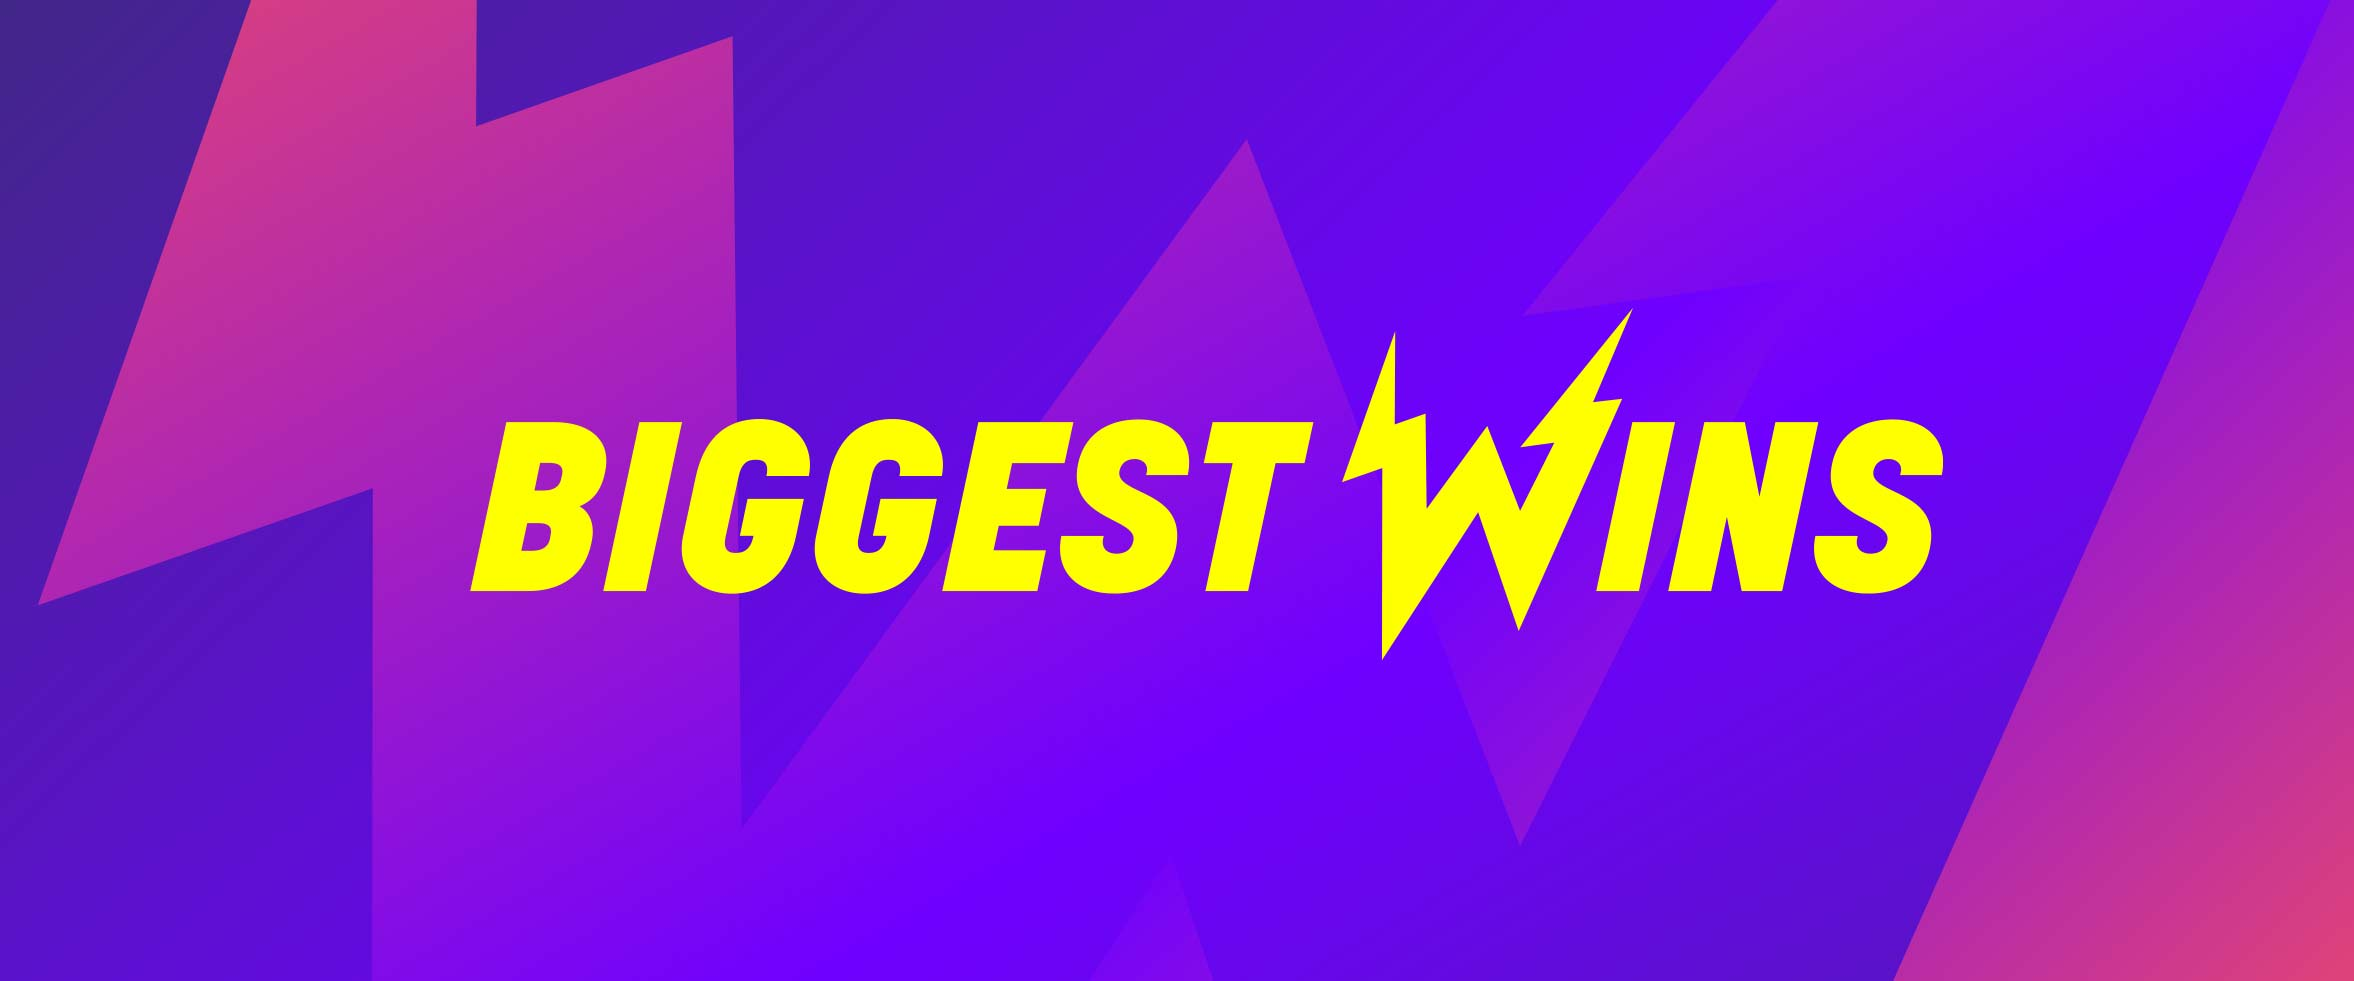 May's Big Wins at Wildz Casino - $4.2m winner and more!